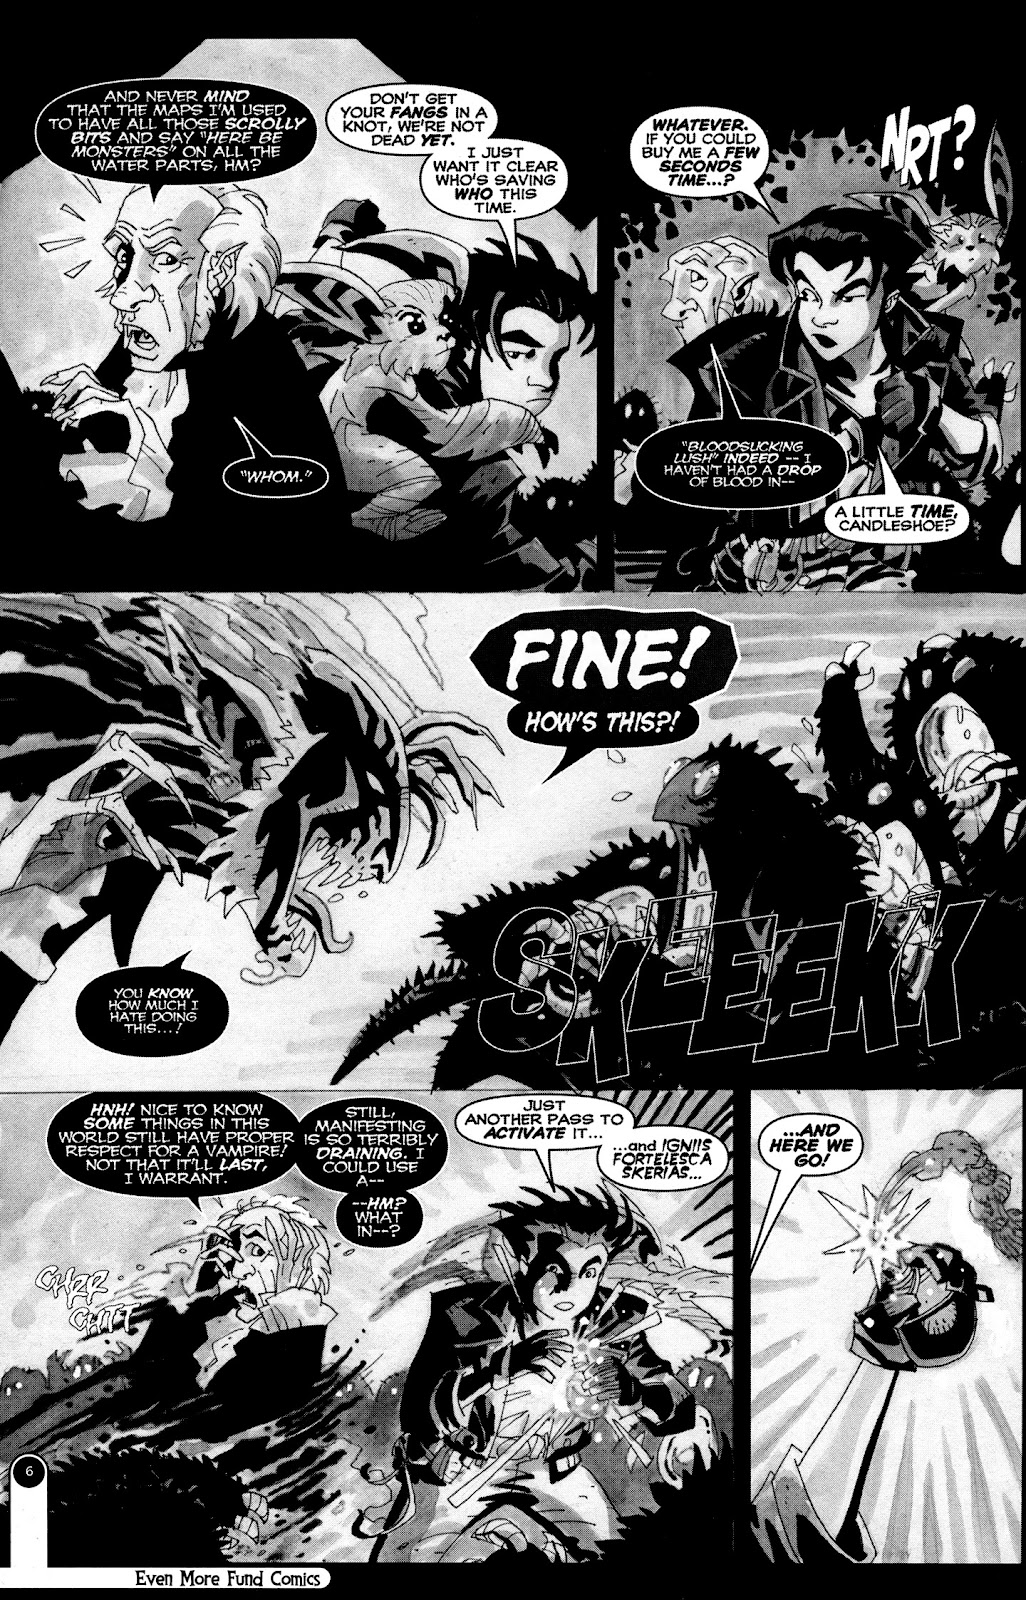 Read online Even More Fund Comics comic -  Issue # TPB (Part 1) - 6